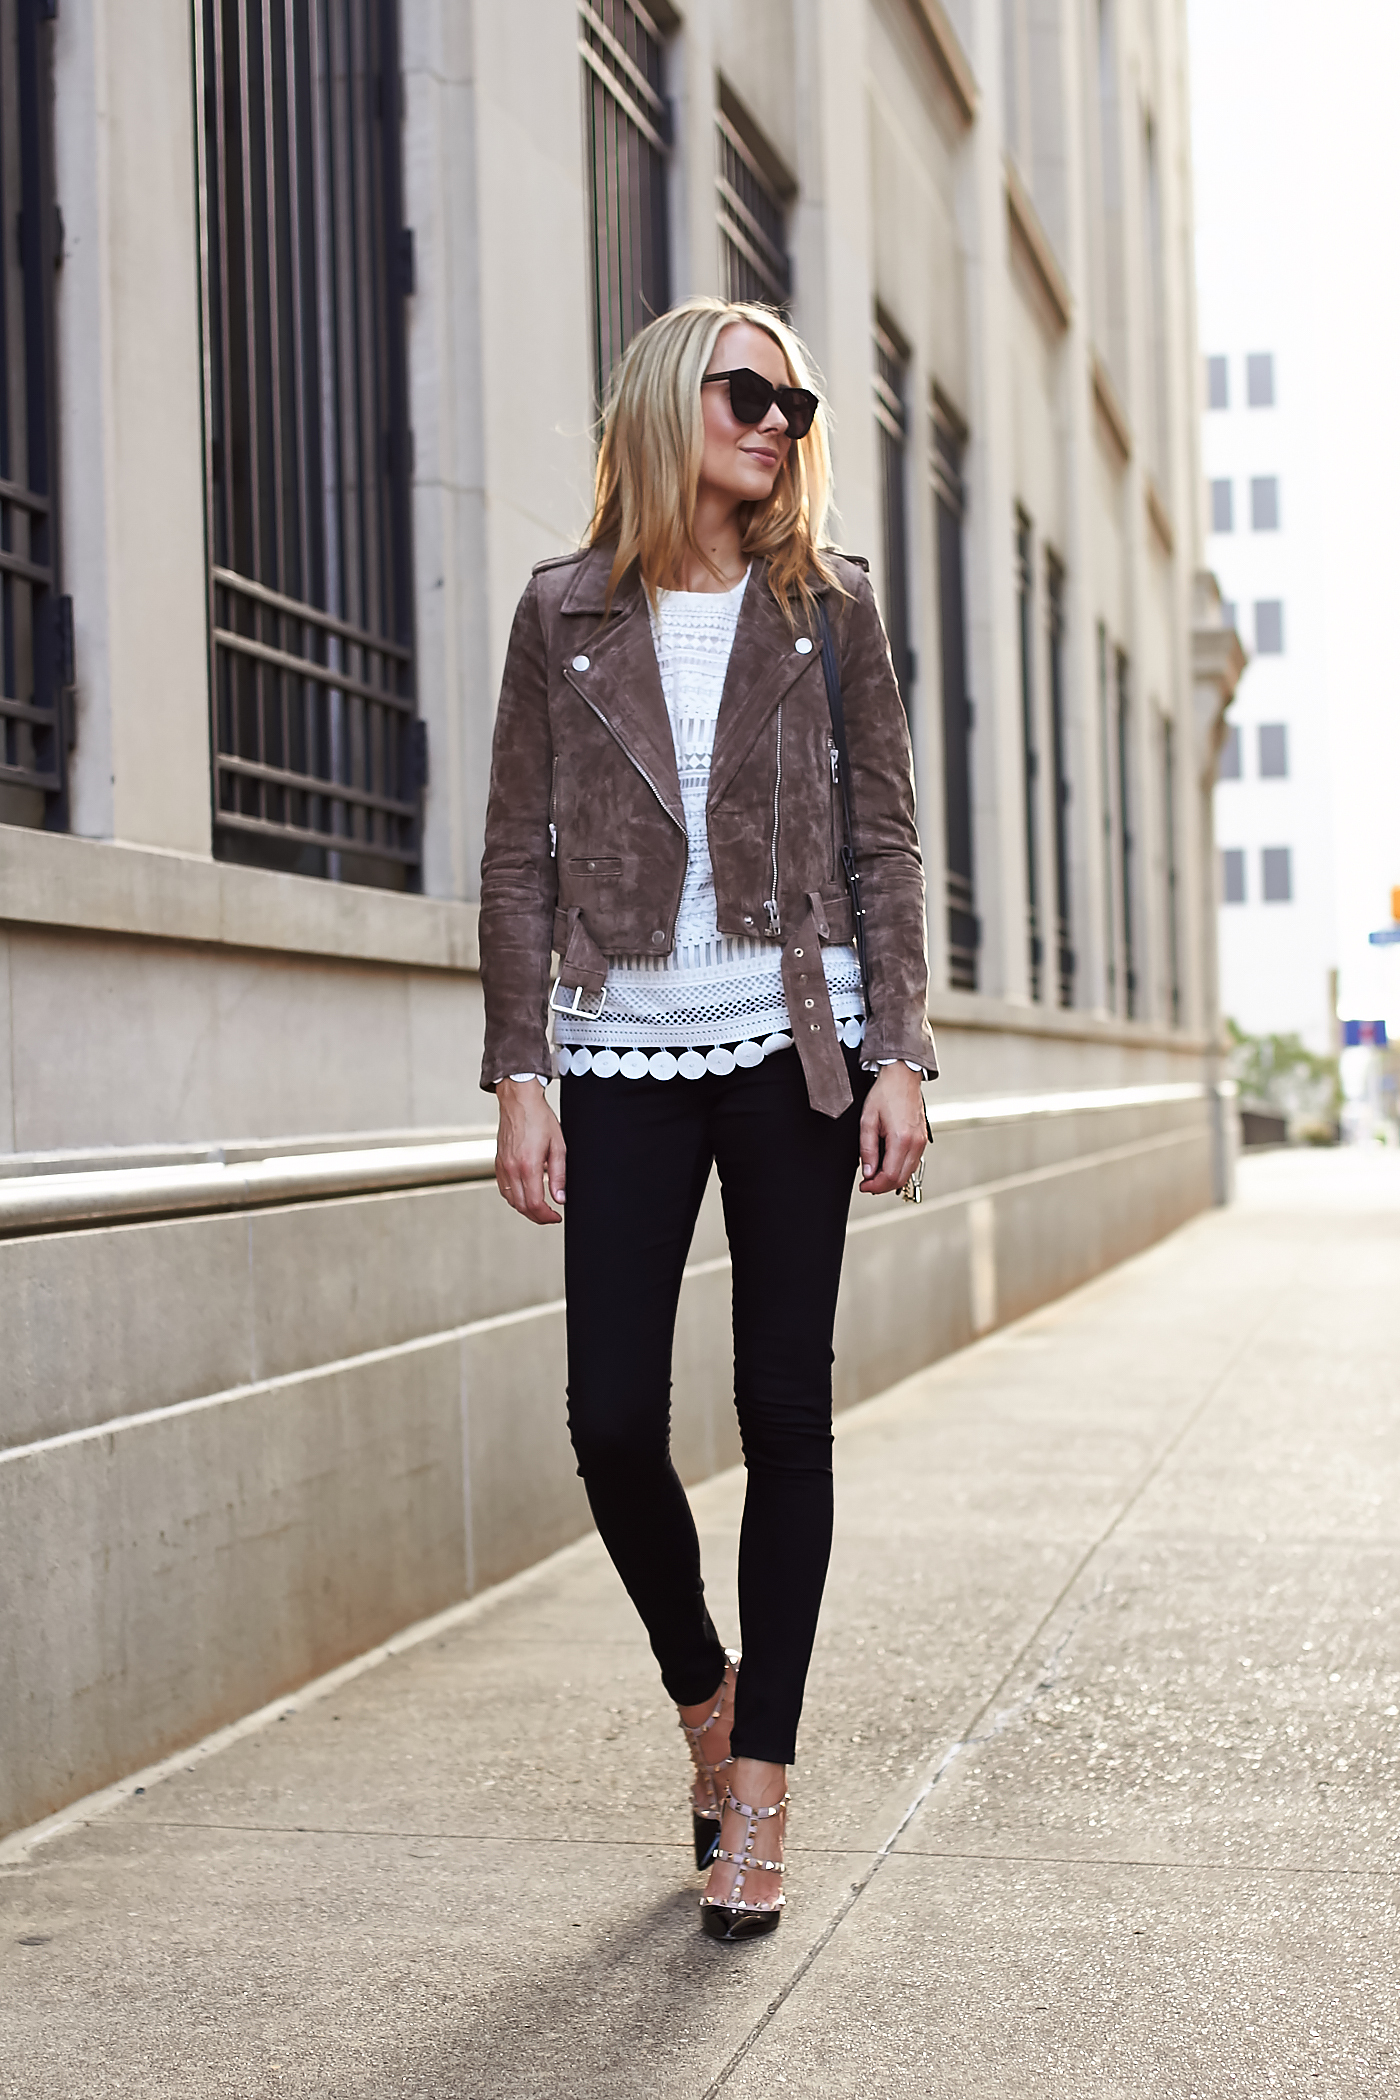 c1e7a504ff8 Fall Outfit BLANKNYC Morning Suede Moto Jacket Black